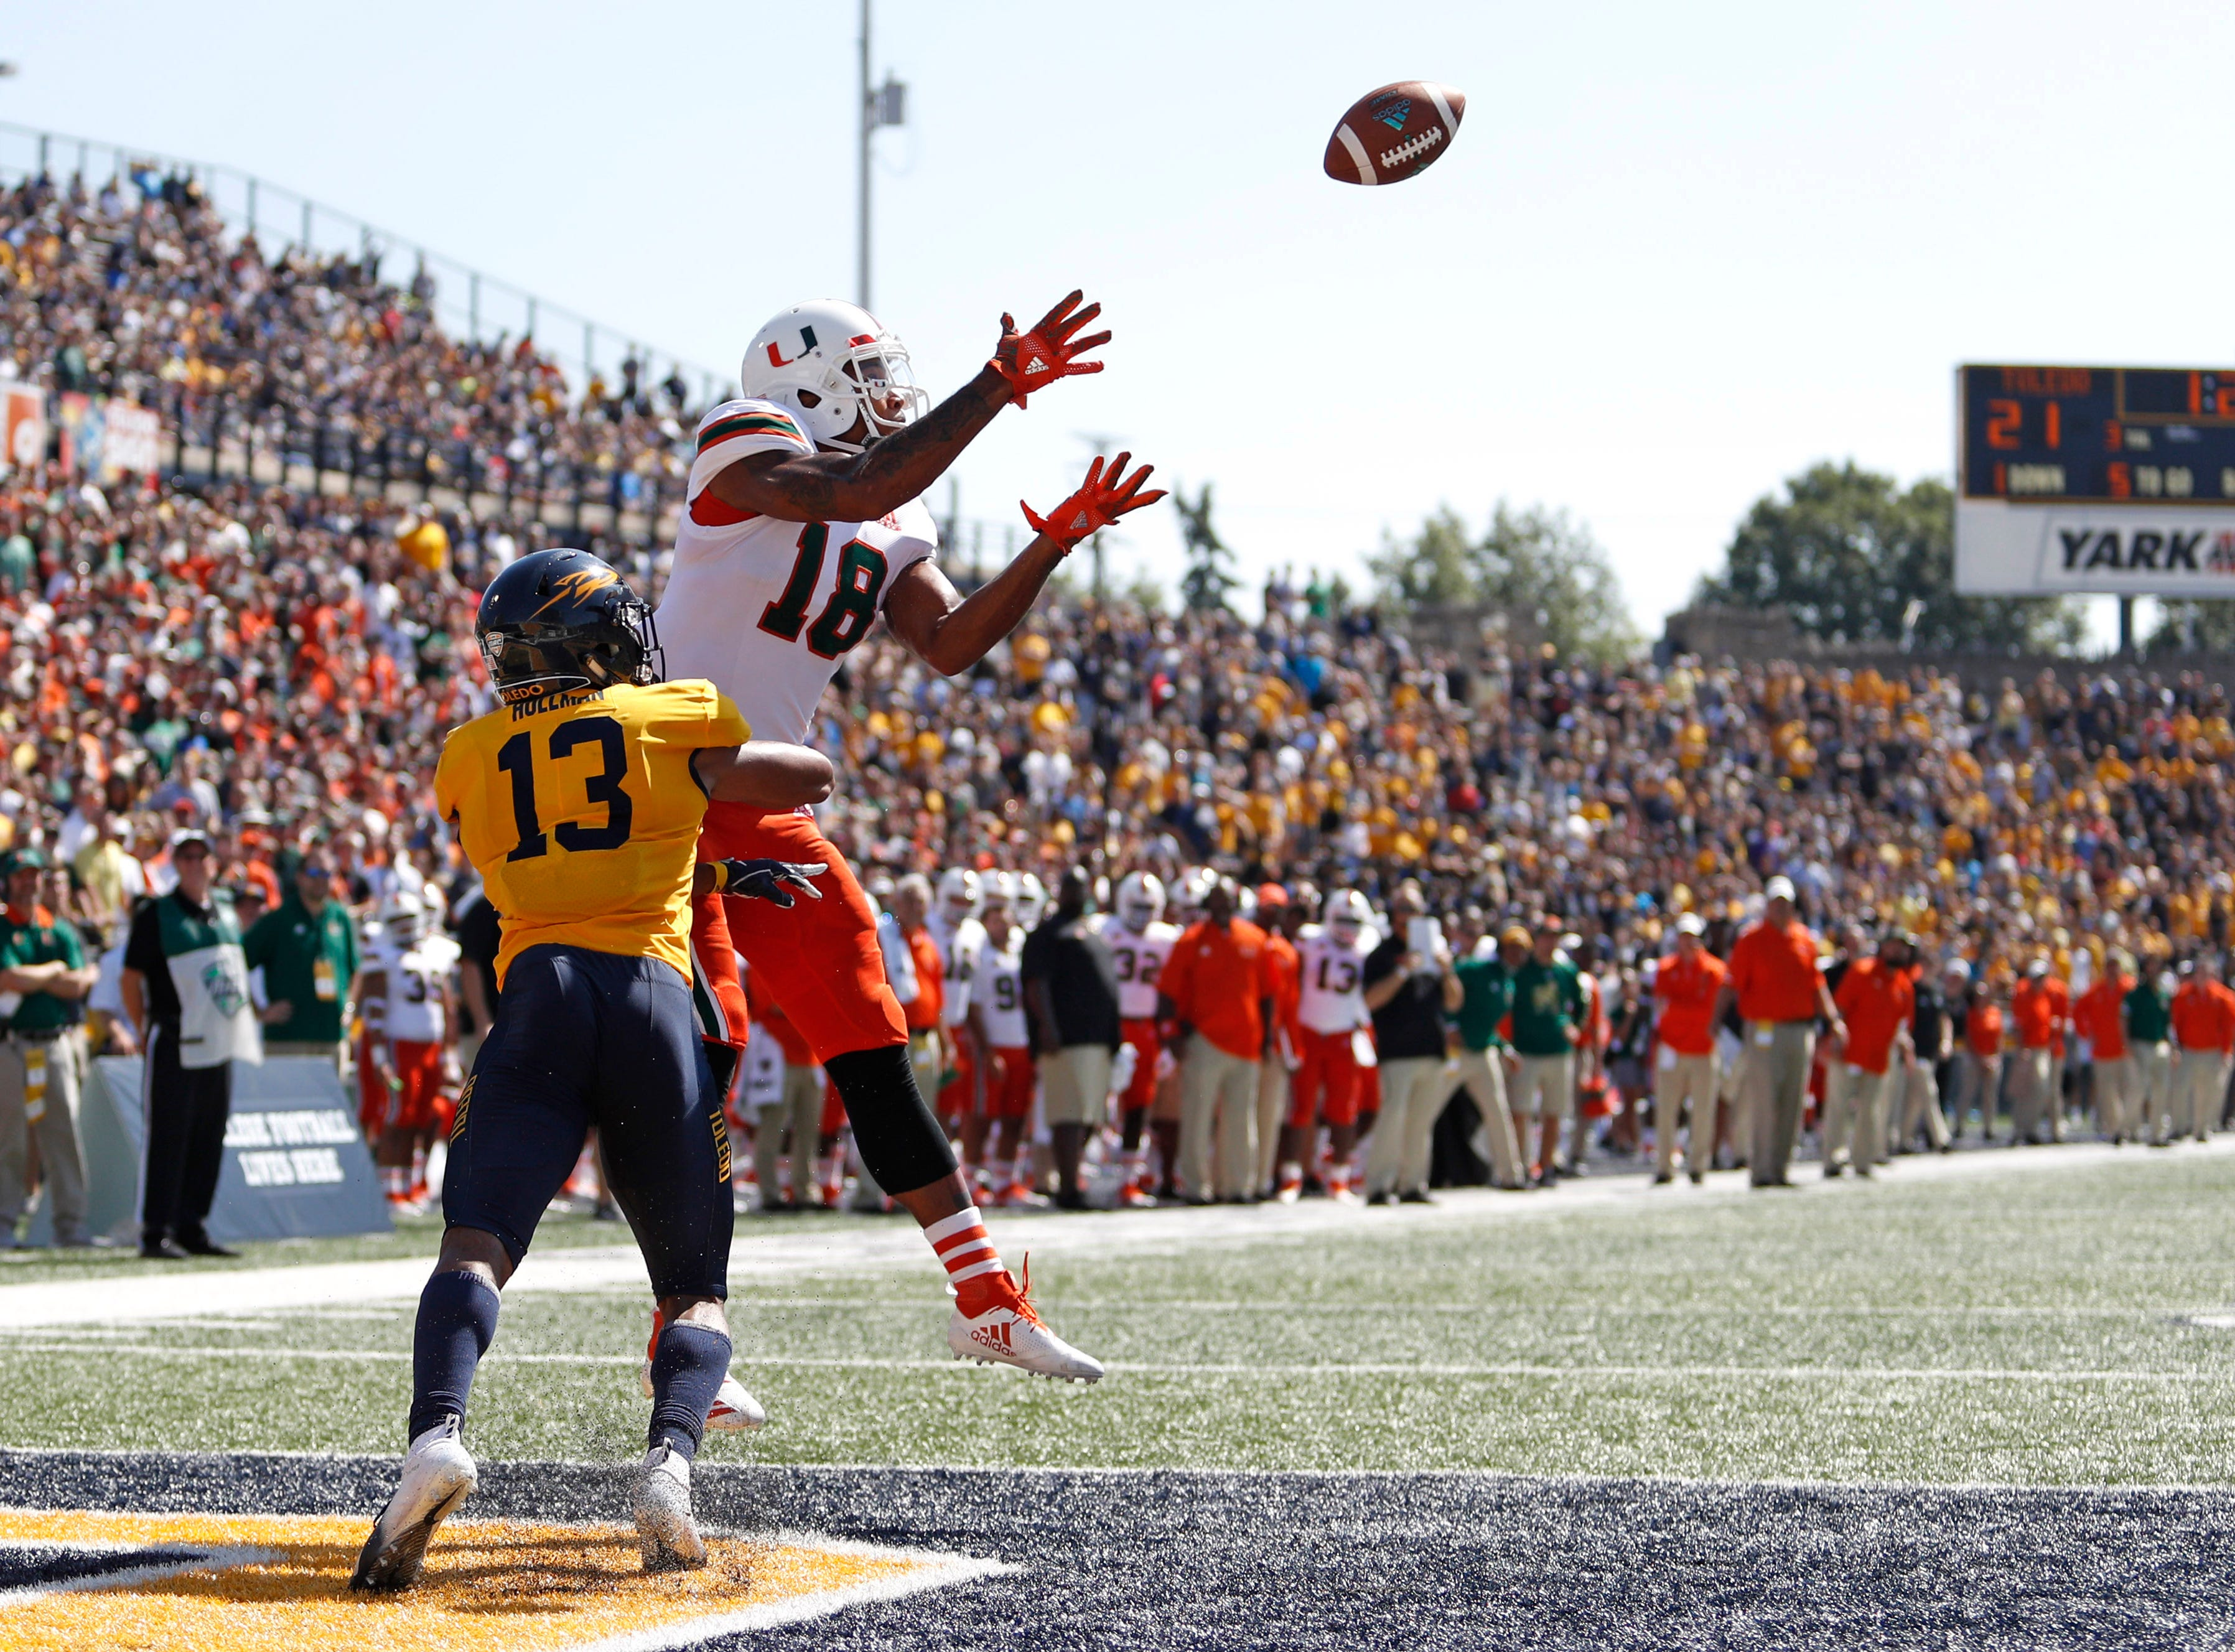 Miami Hurricanes wide receiver Lawrence Cager (18) makes a catch for a touchdown against Toledo Rockets cornerback Ka'dar Hollman (13) during the third quarter at Glass Bowl.